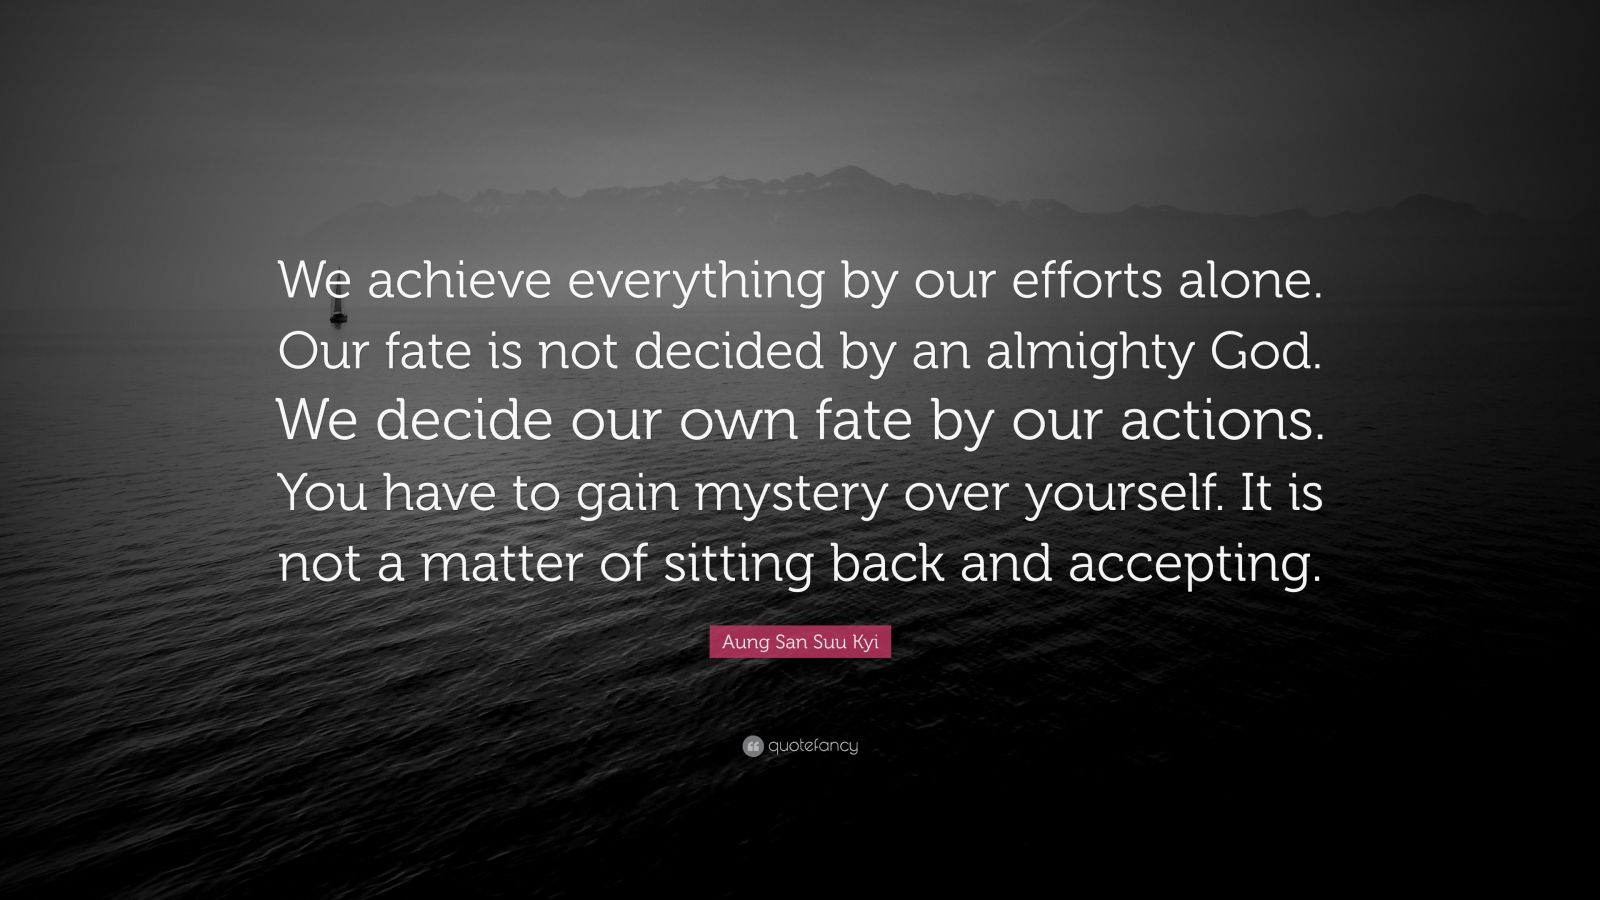 "Aung San Suu Kyi Quote: ""We achieve everything by our efforts alone. Our fate is not decided by an almighty God. We decide our own fate by our actions. You have to gain mystery over yourself. It is not a matter of sitting back and accepting."""